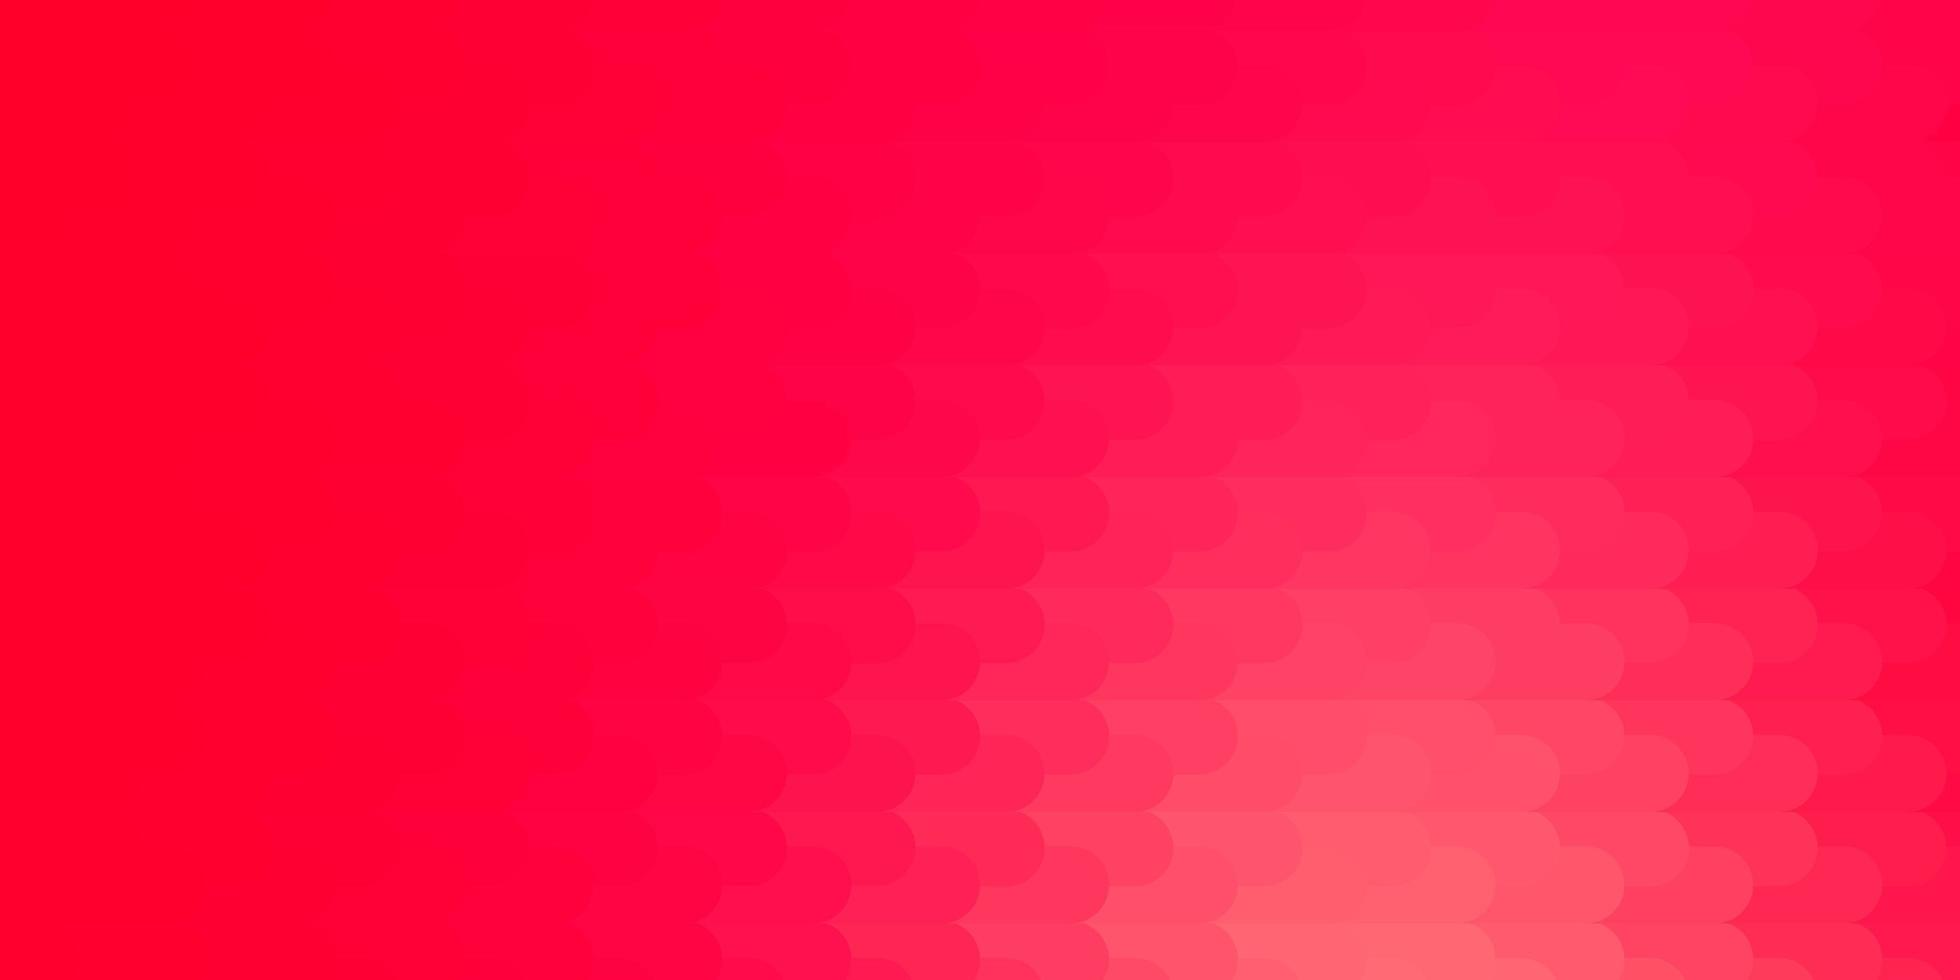 Light Red, Yellow vector backdrop with lines.